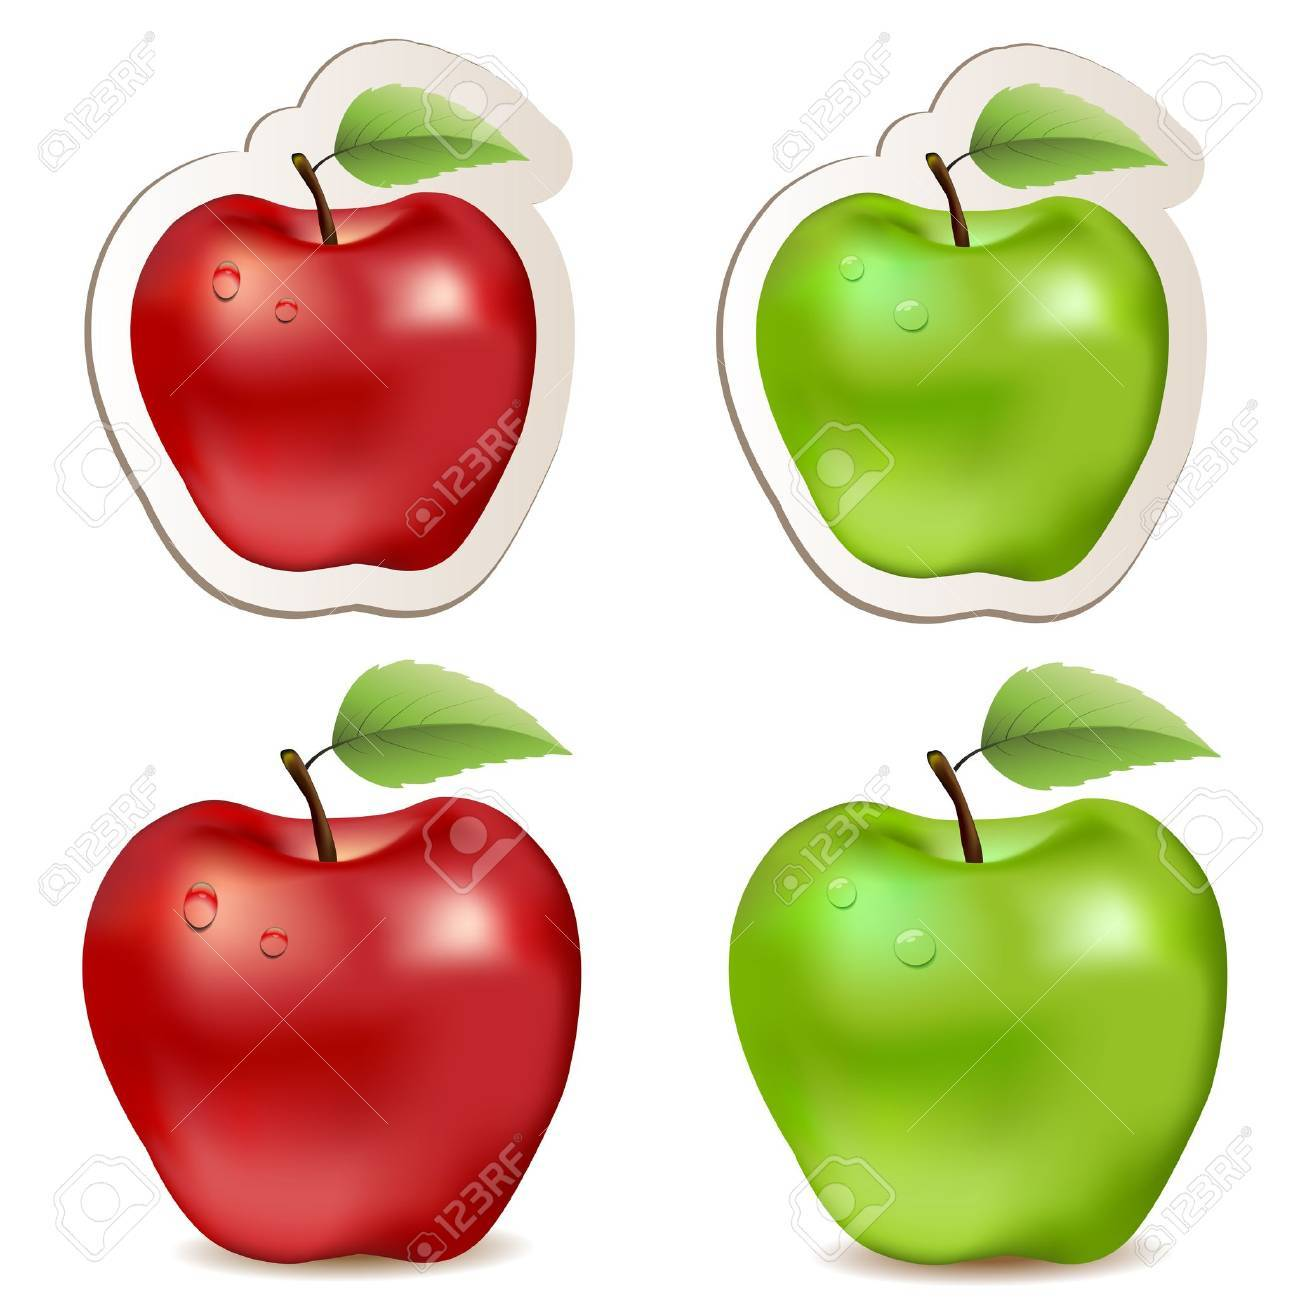 Big shiny red and green apples Stock Vector - 15322708